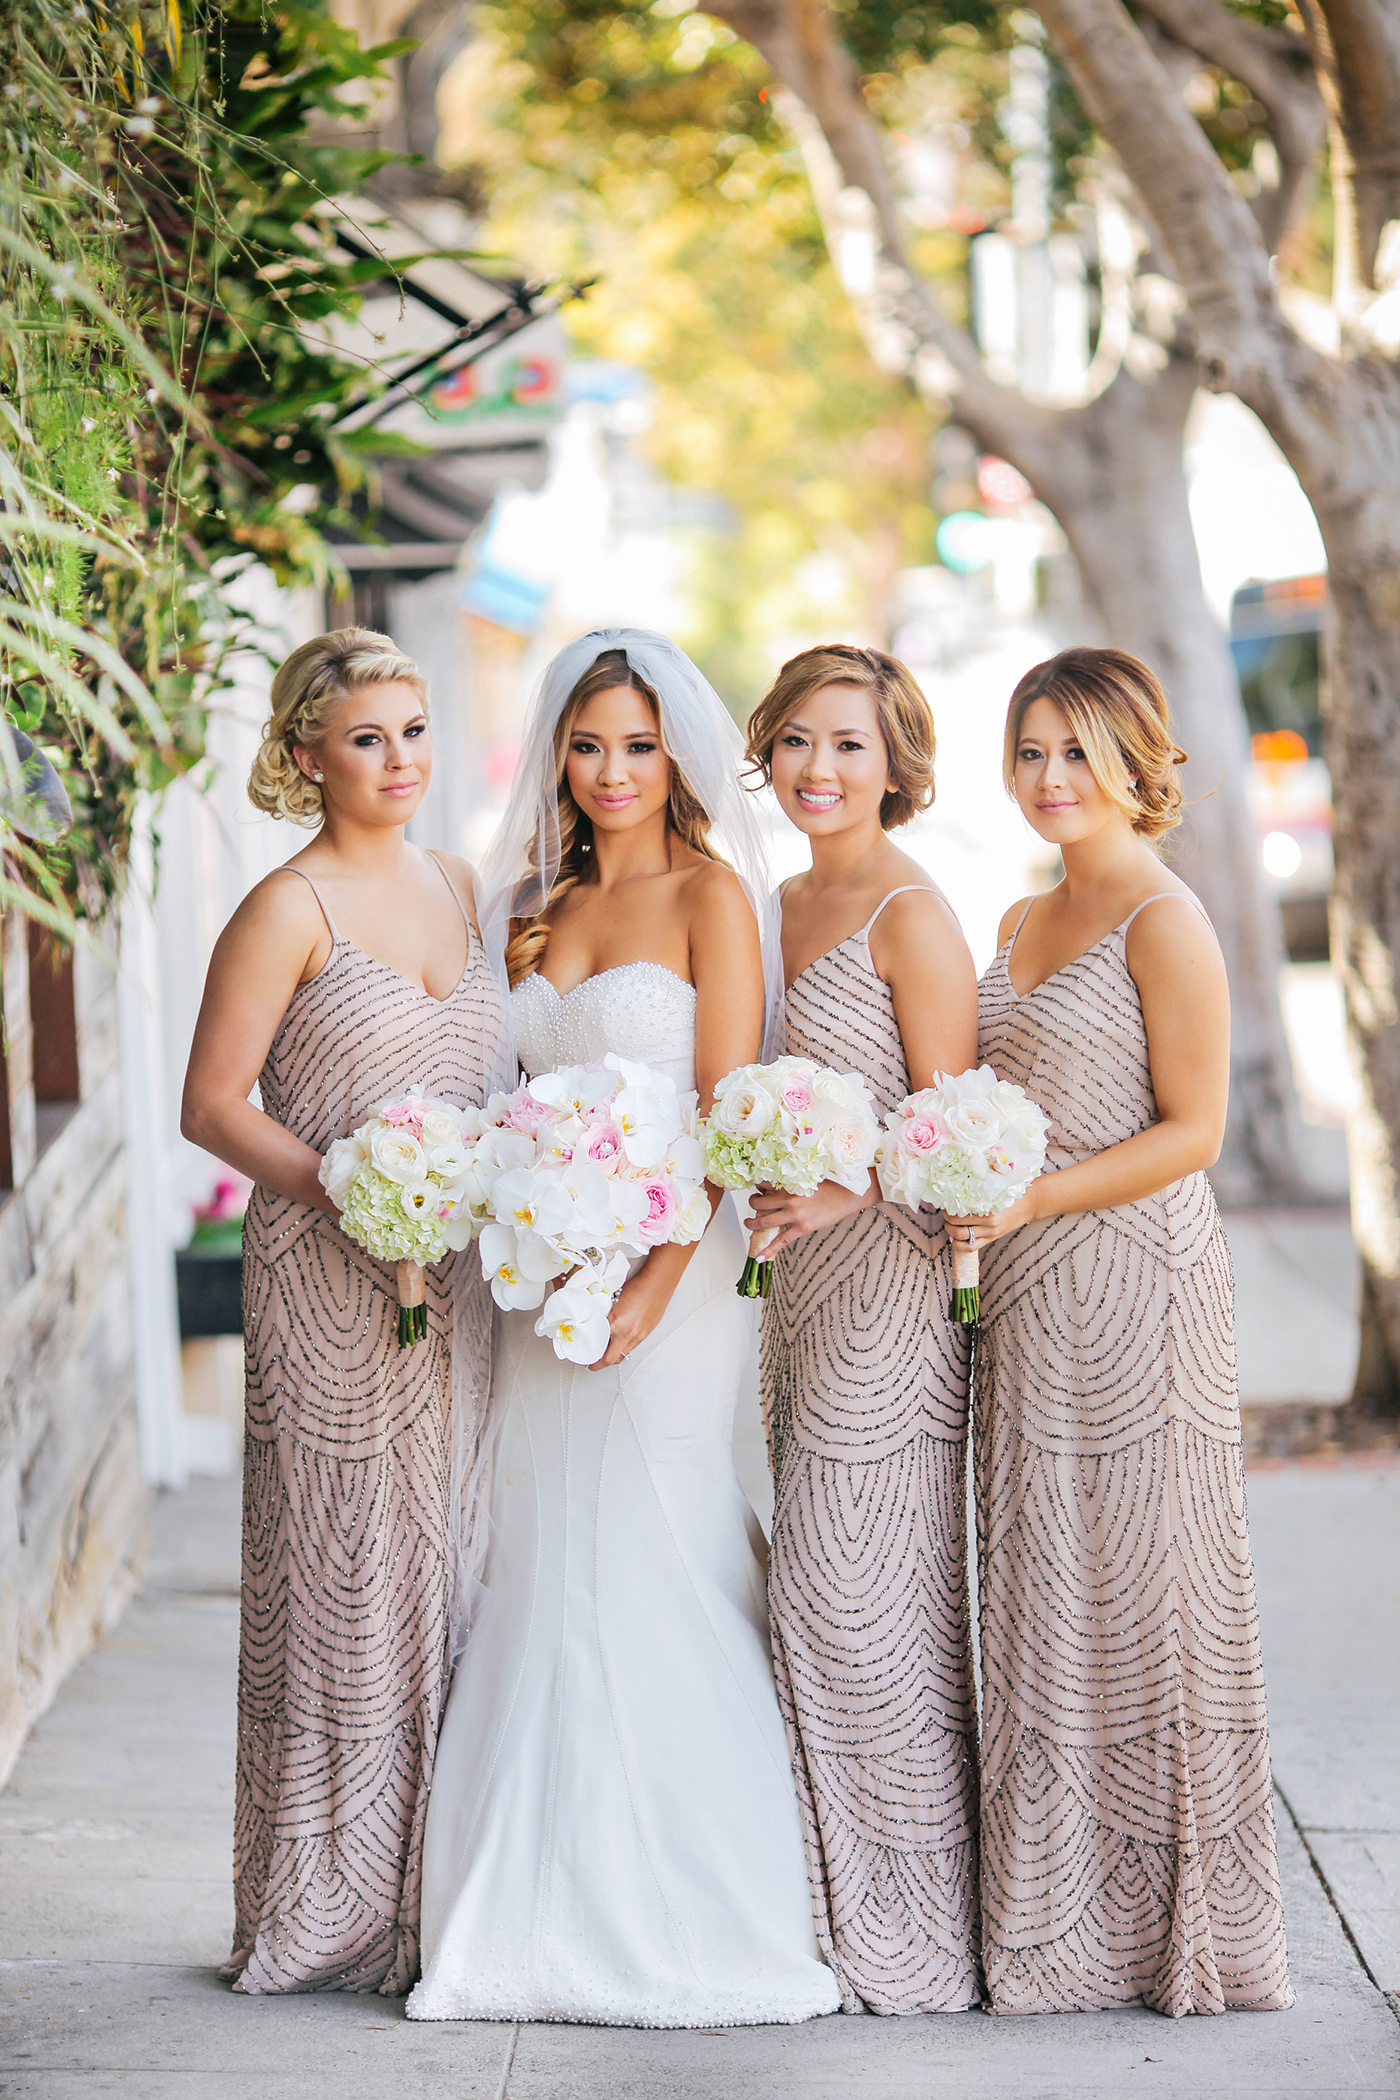 Scalloped Bridesmaids' Dresses